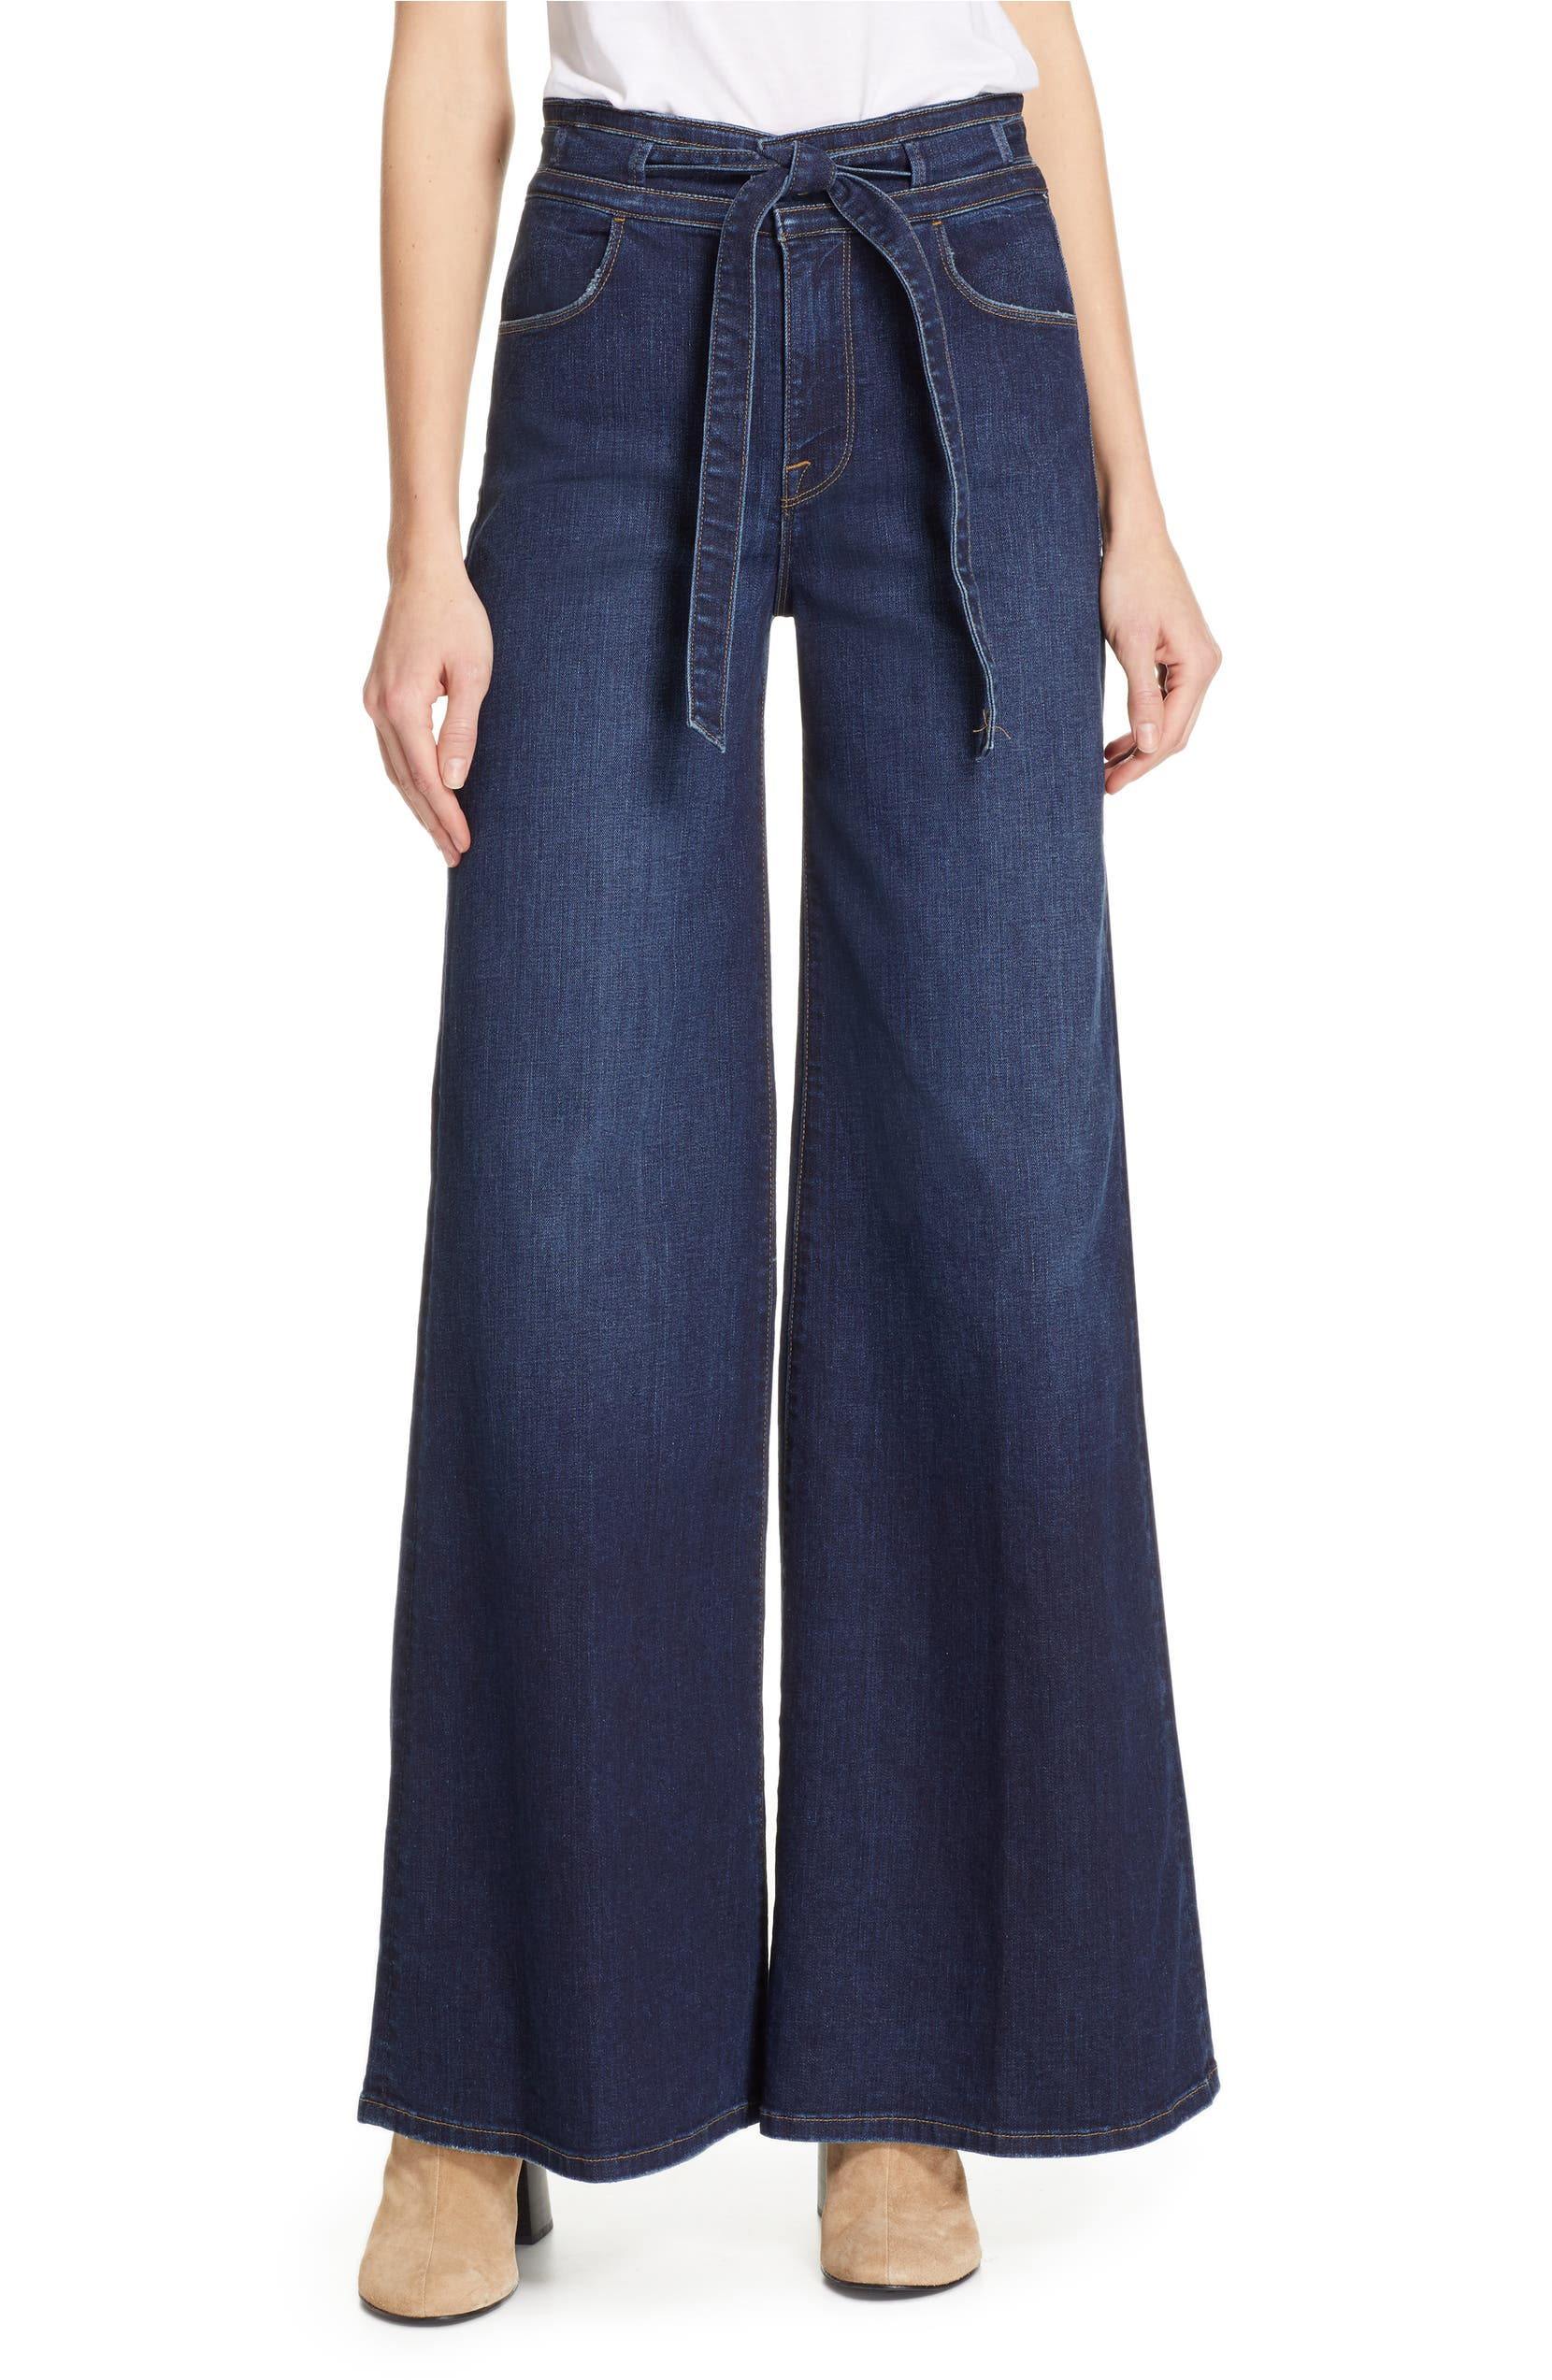 FRAME Belted Palazzo Jeans (Meribo) (Nordstrom Exclusive)  c36fcb734410